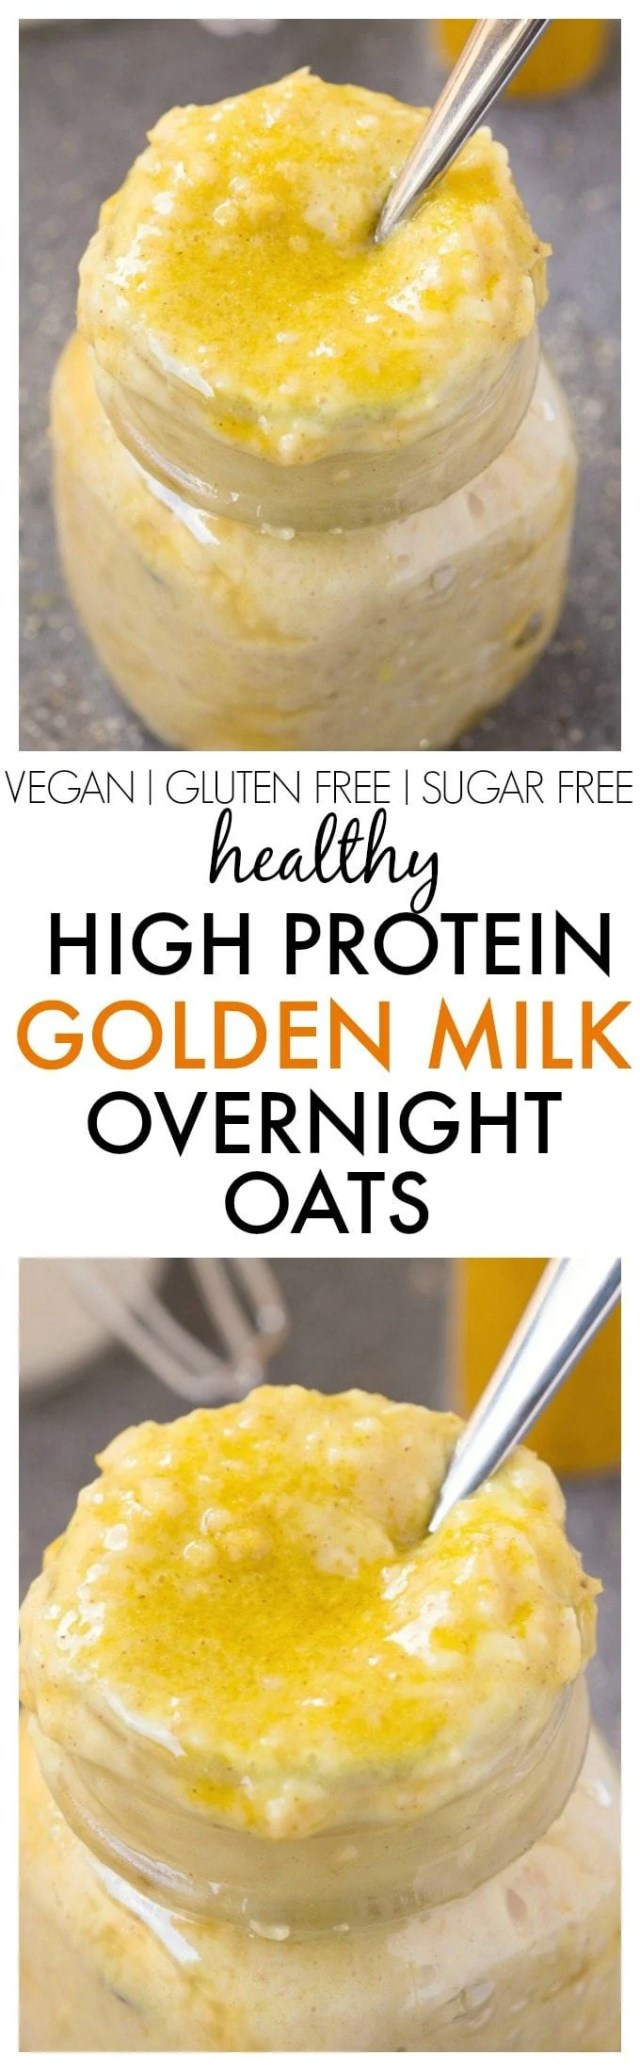 Healthy High Protein Golden Milk Overnight Oats - Packed with superfoods and nutrients boasting better digestion and antioxidants, this satisfying breakfast bowl is delicious AND sugar free! {vegan, gluten free, dairy free recipe}- thebigmansworld.com